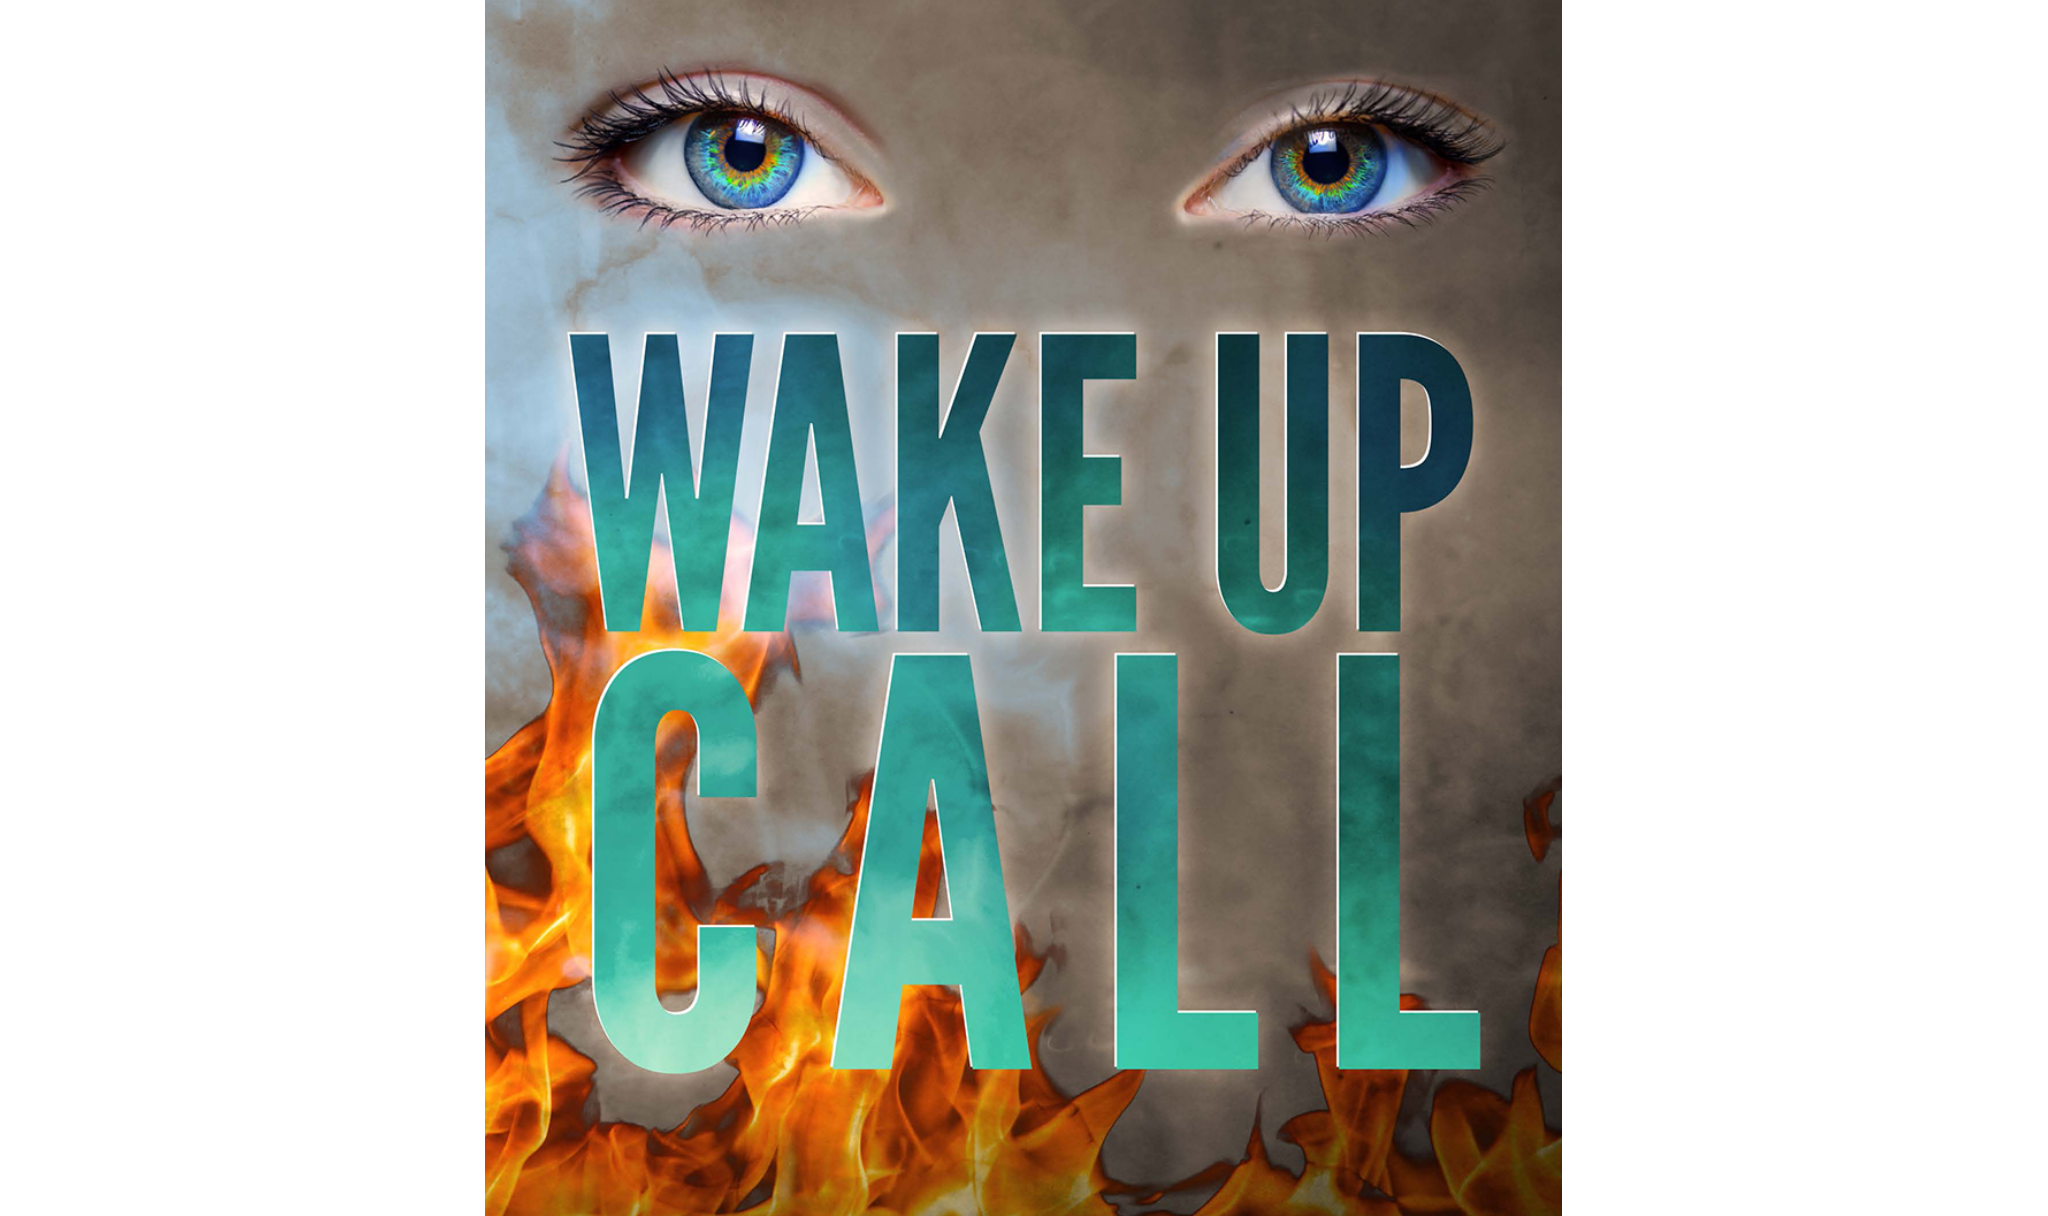 Book 1 - Wake Up Call